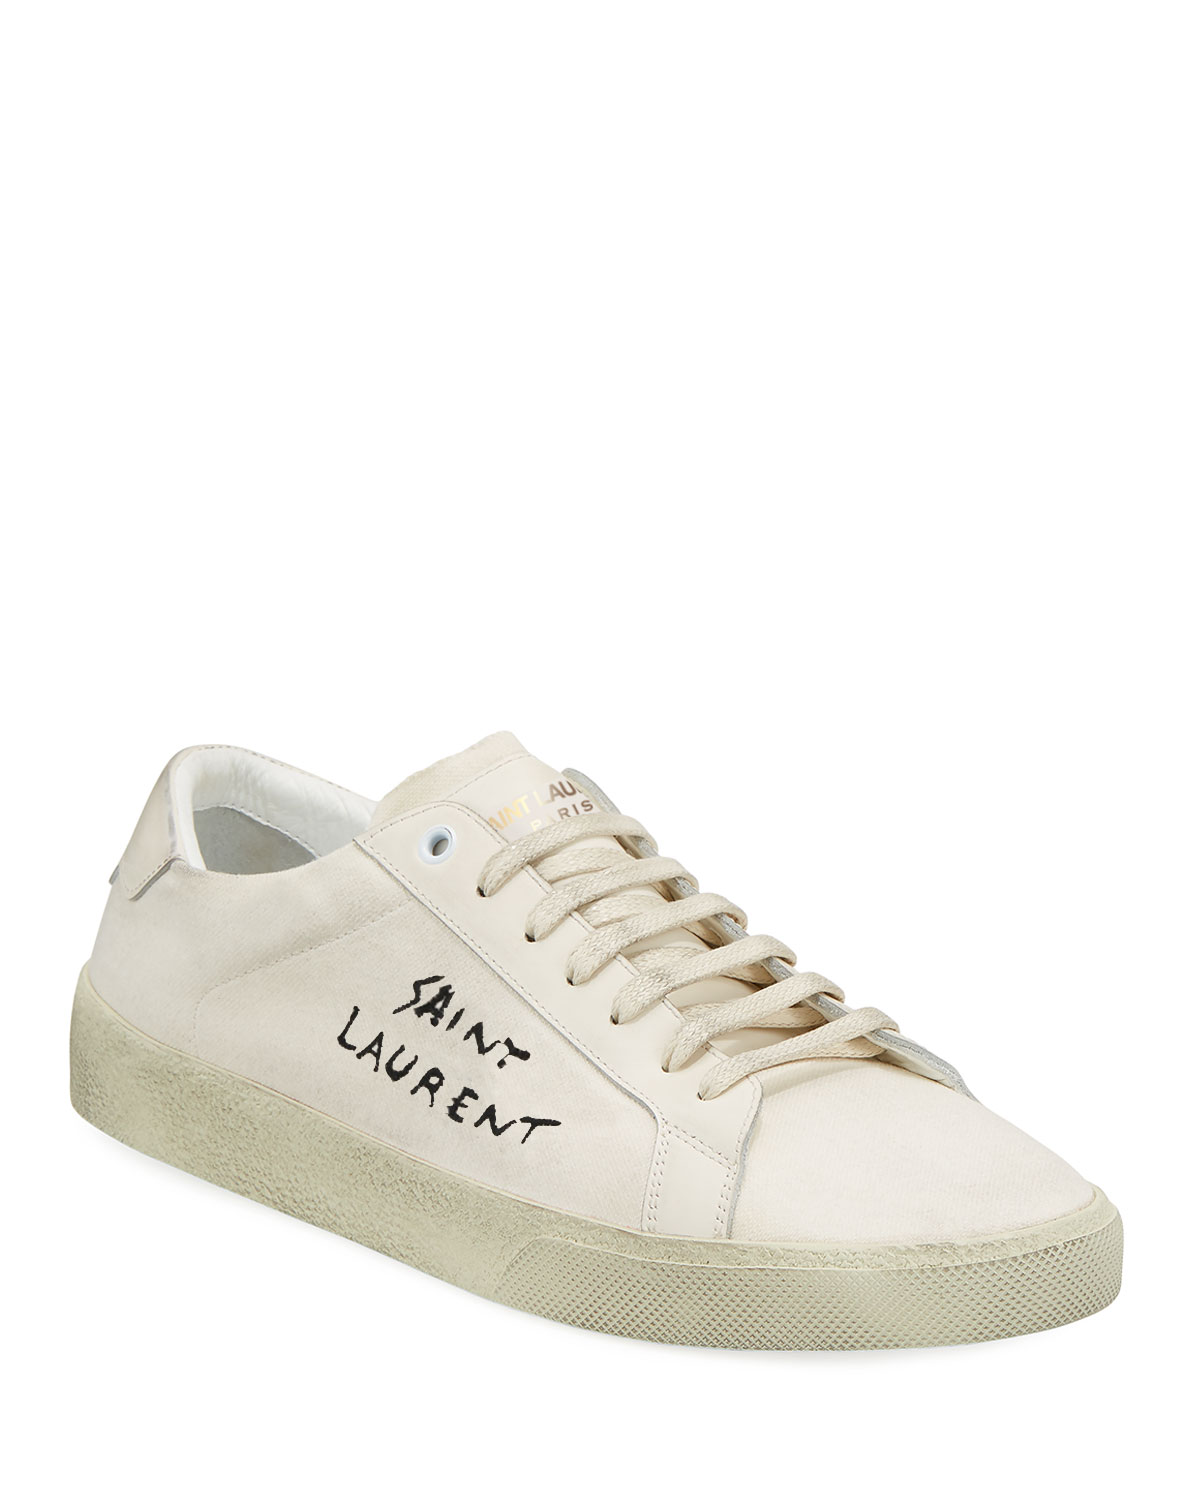 6b10f17e56b Quick Look. Saint Laurent · Men's Canvas Low-Top Sneakers ...